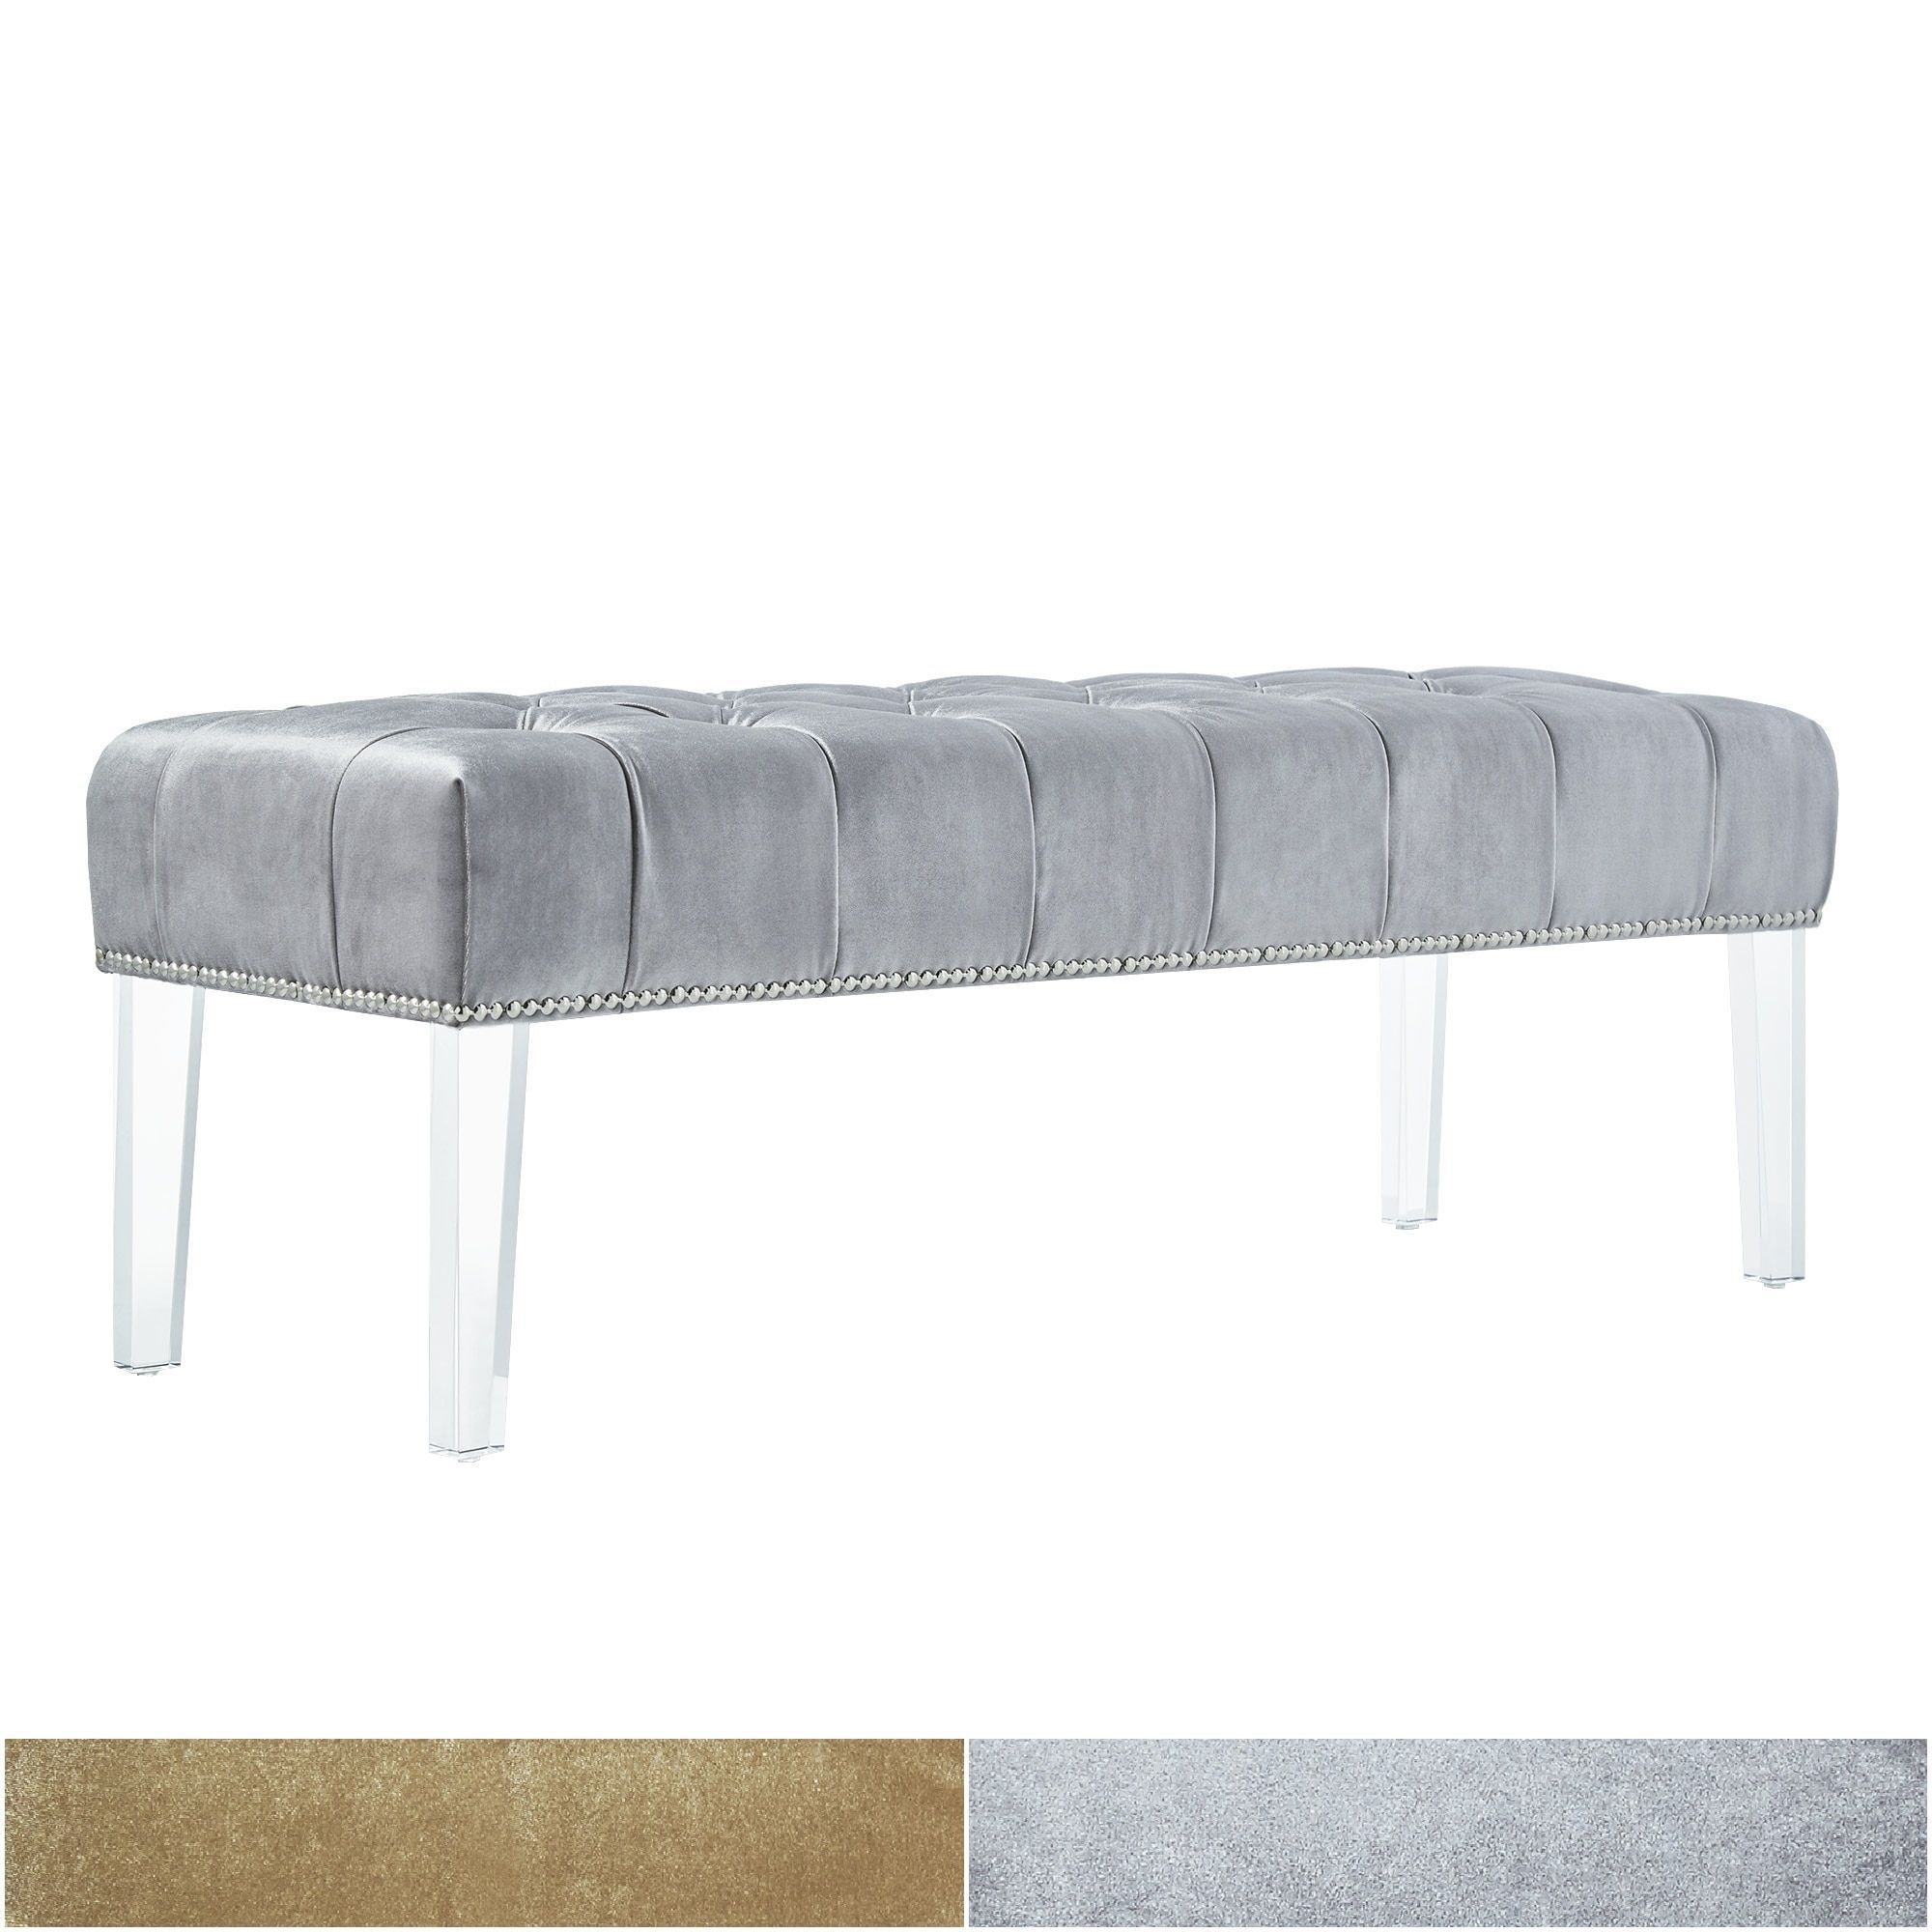 Anya velvet nailhead button tufted acrylic leg bench by inspire q overstock com shopping the best deals on benches